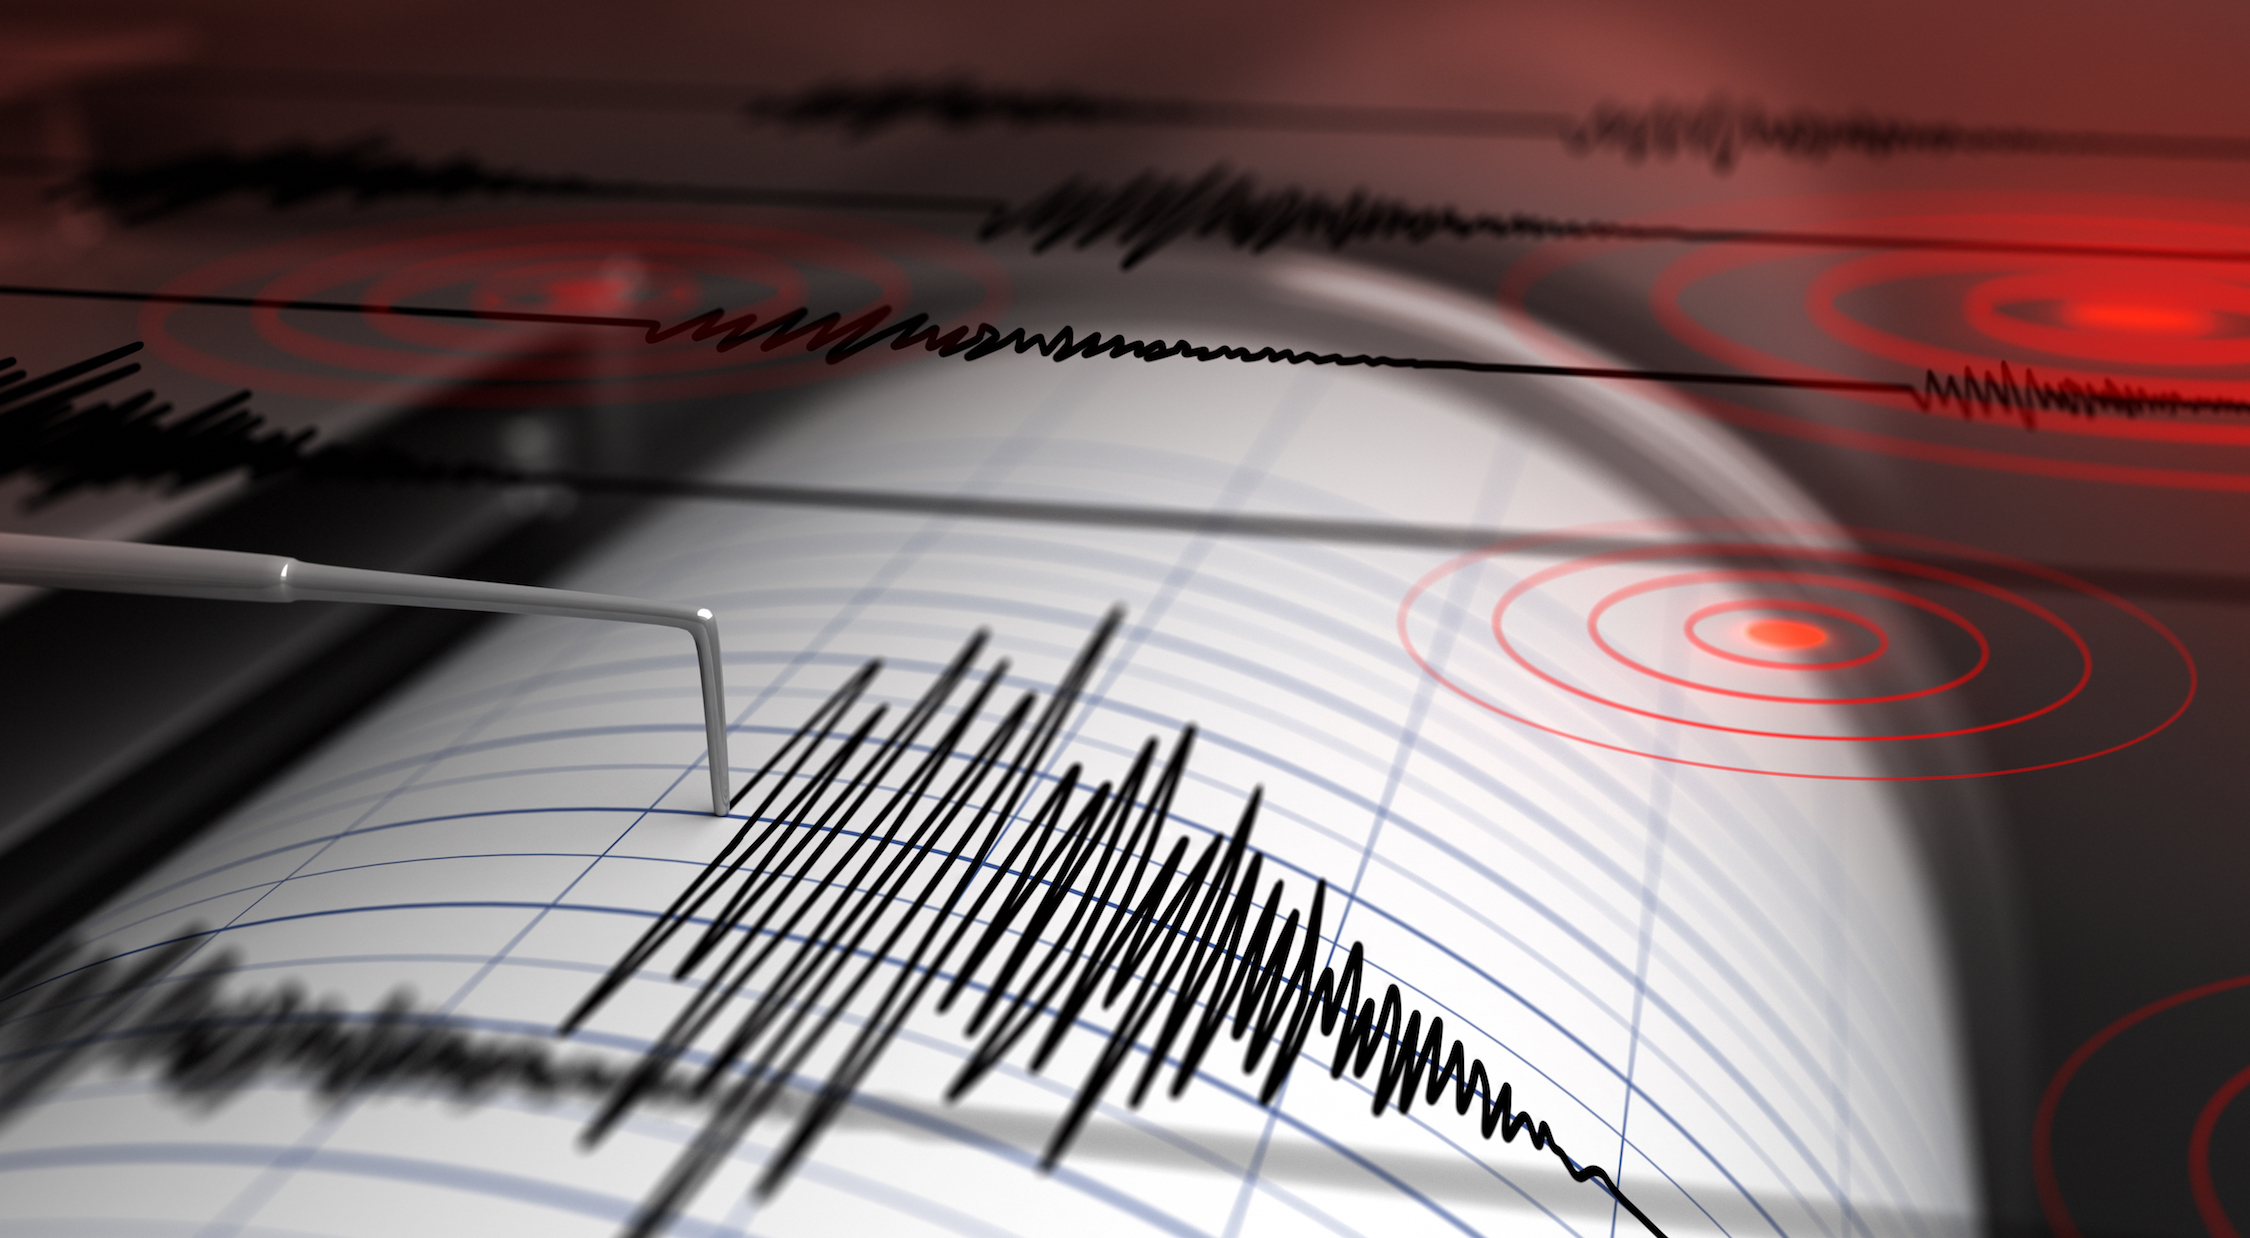 ShakeAlert is an earthquake warning system that may result in a U.S. West Coast prototype that could see limited public use in 2018.